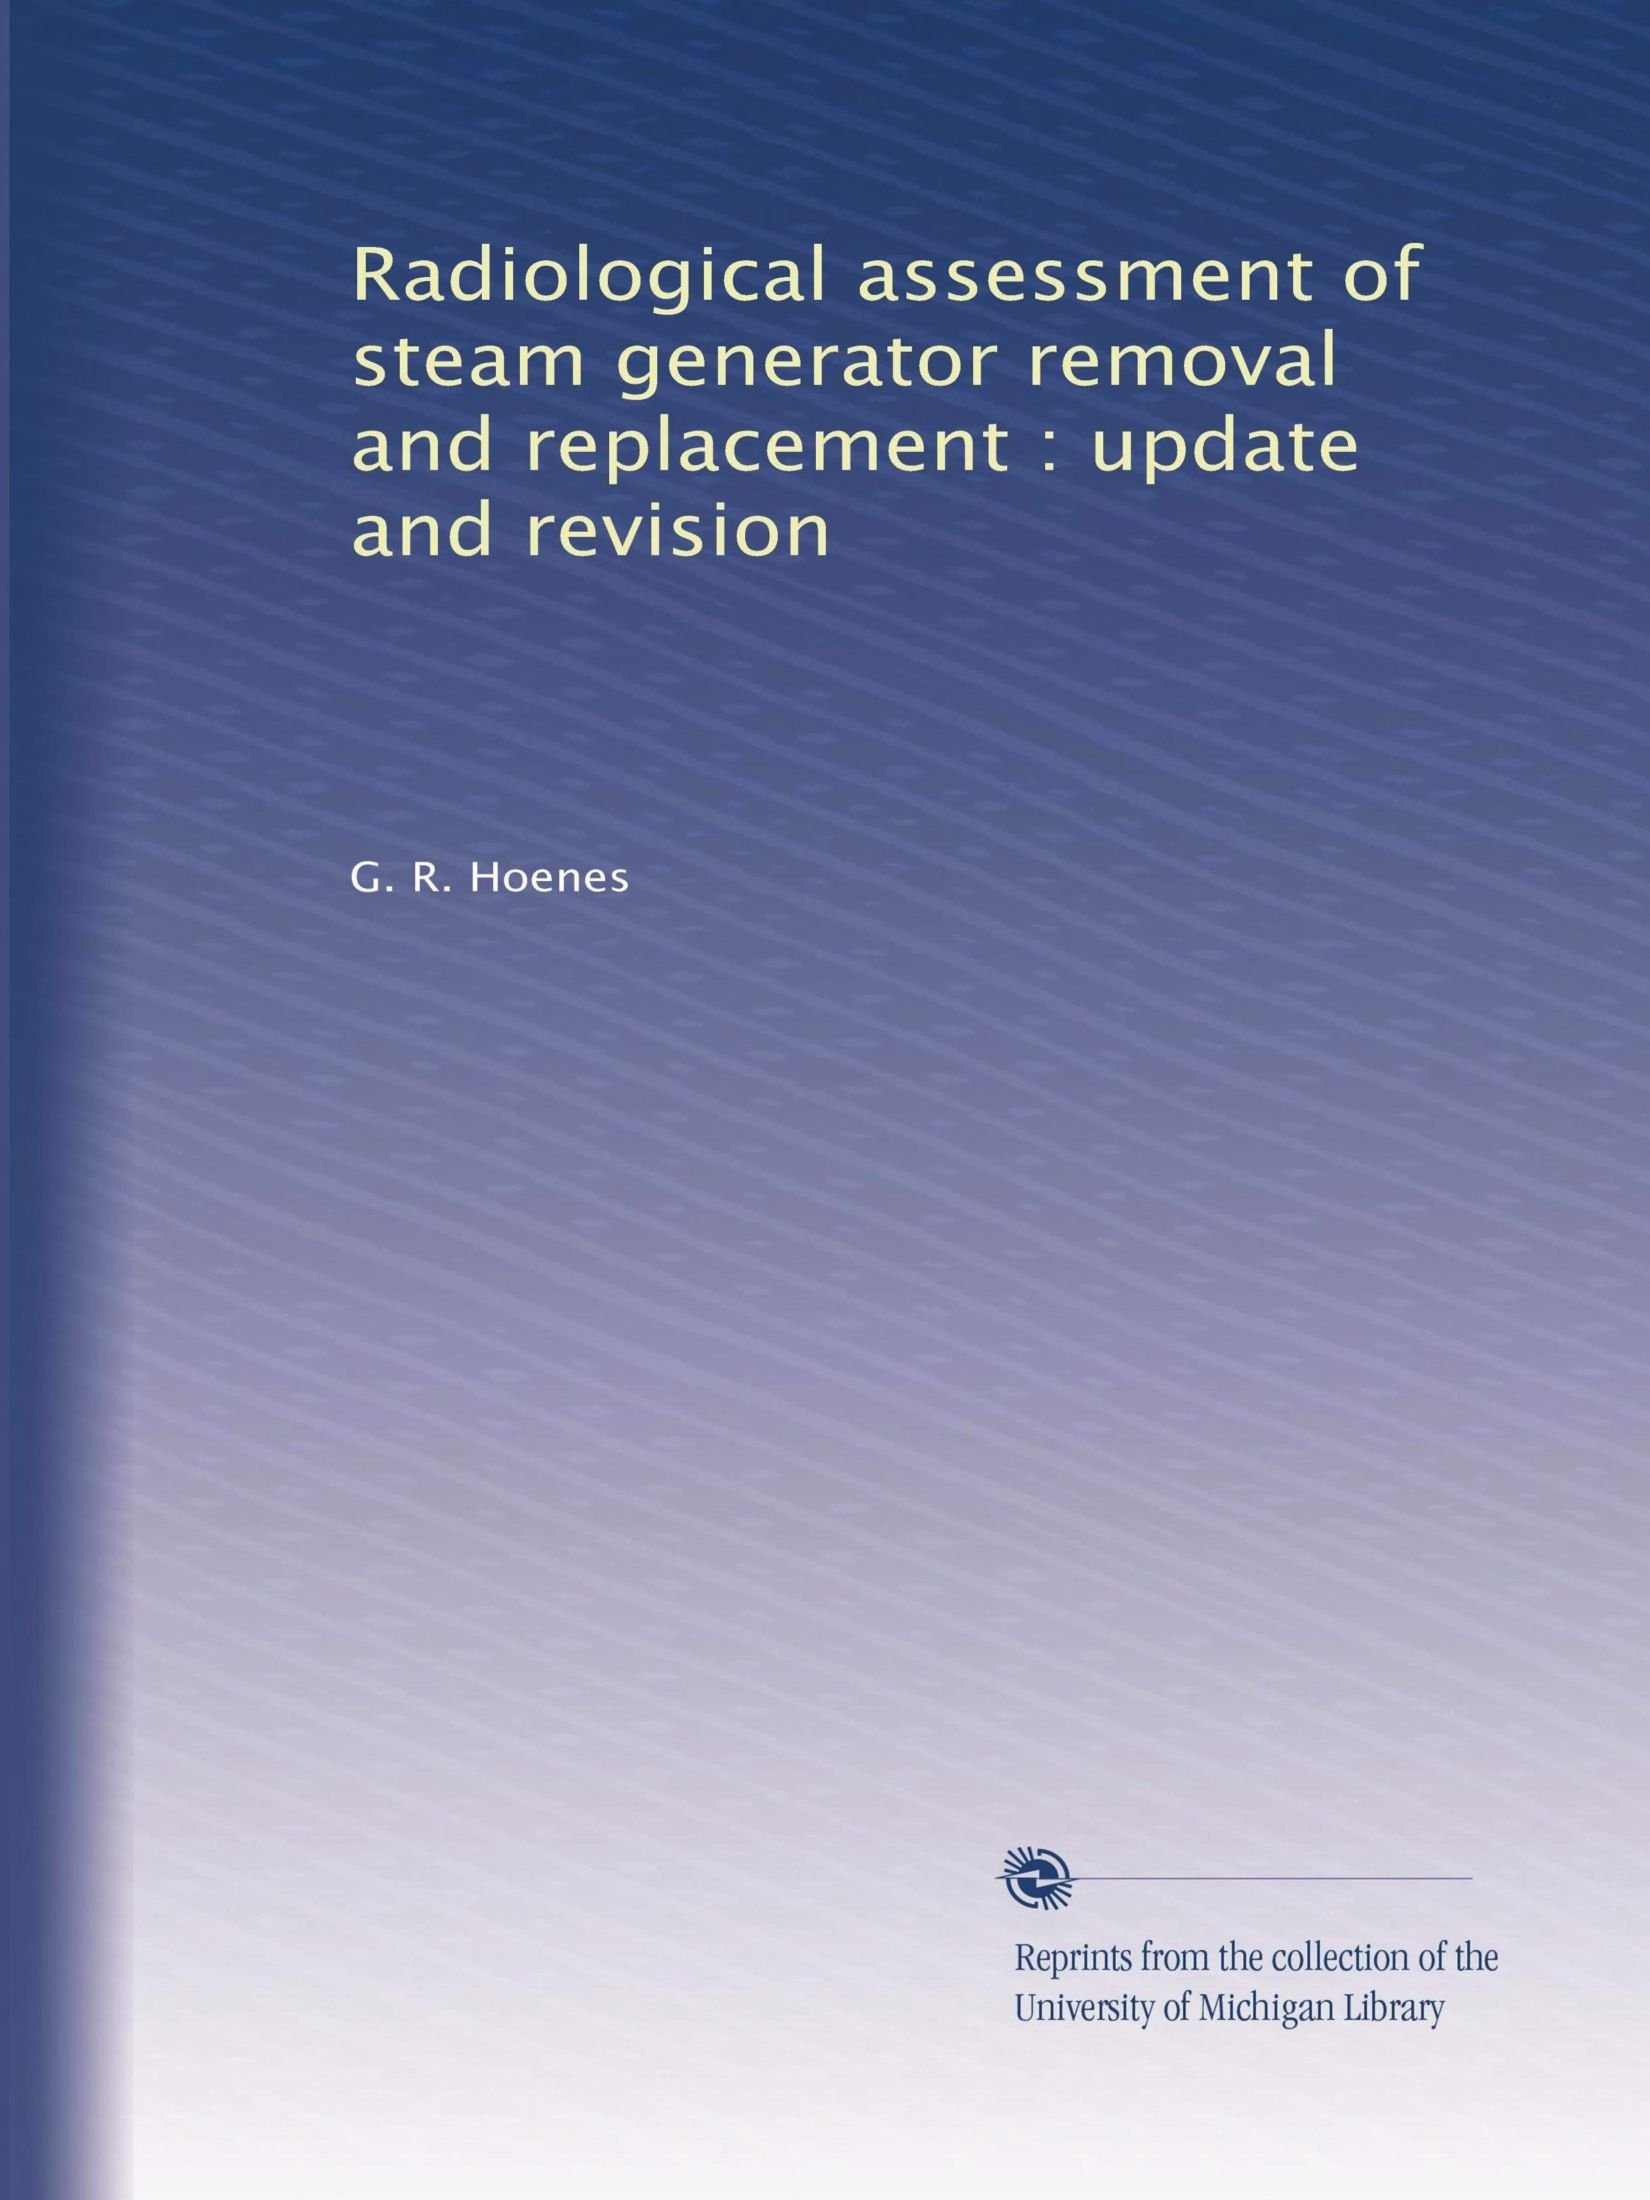 Radiological assessment of steam generator removal and replacement